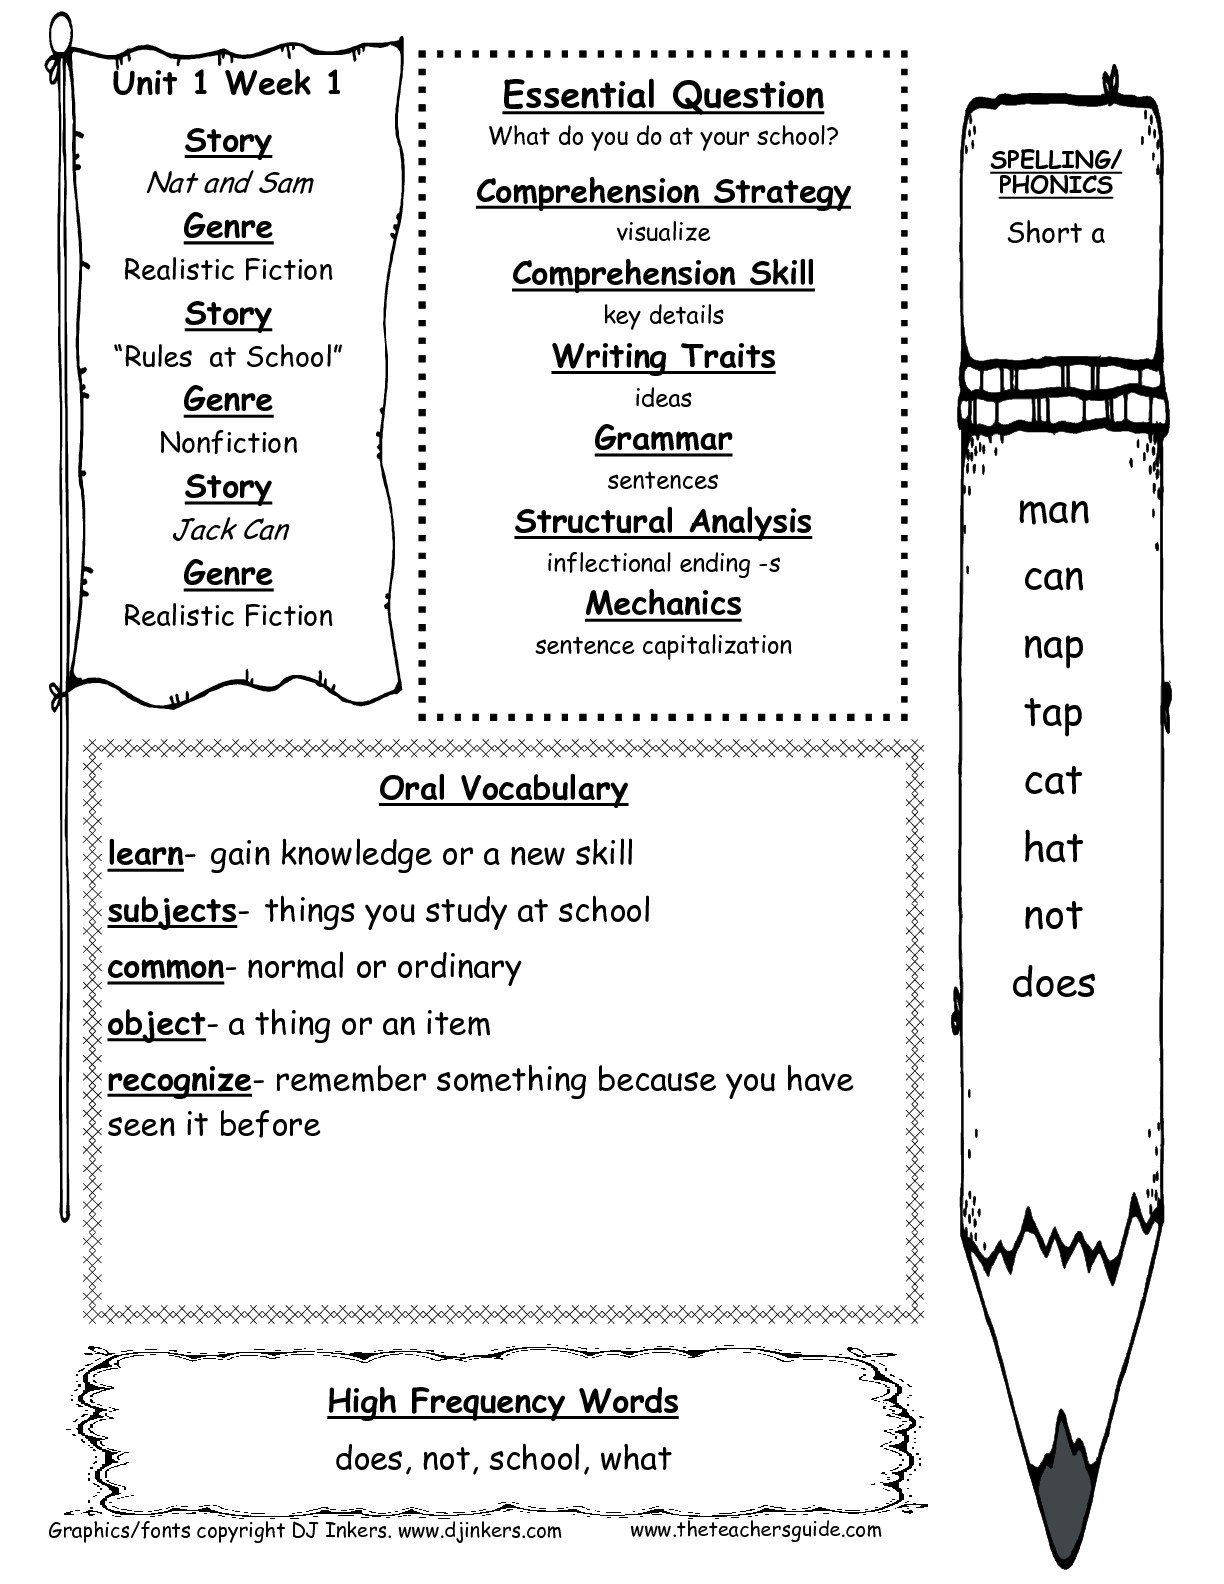 Free Handwriting Worksheets For First Grade Favoritebook